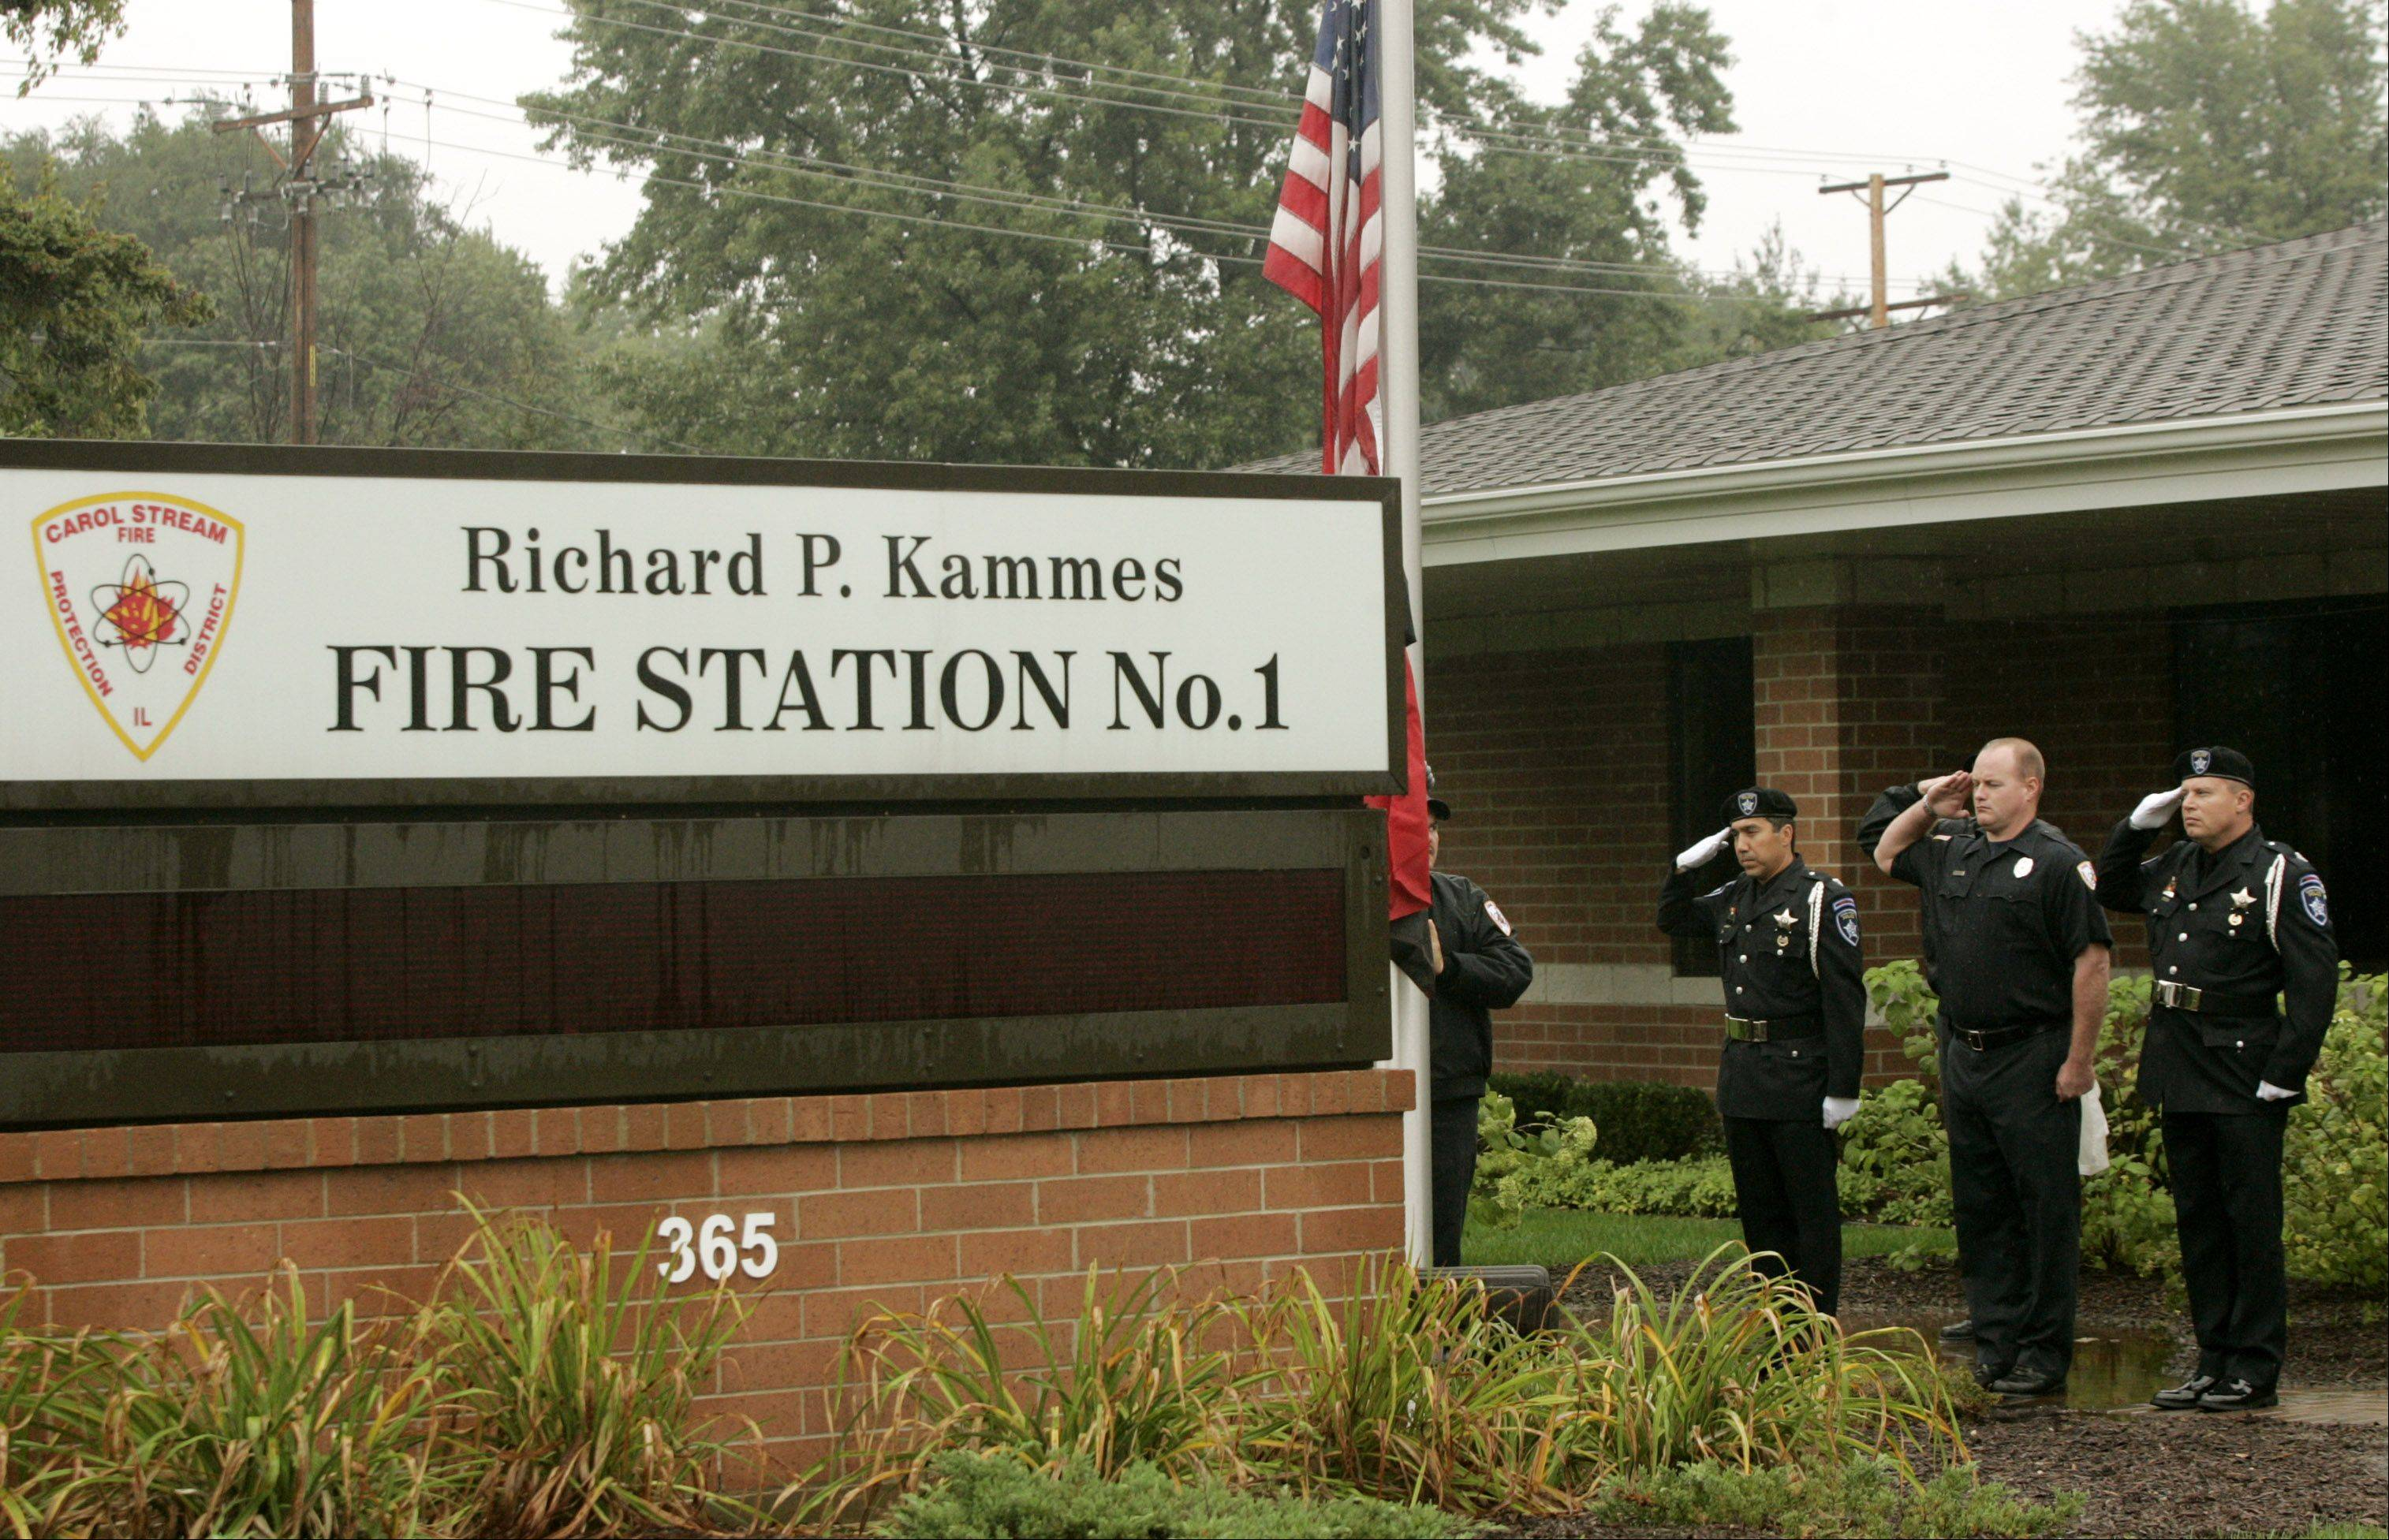 The Carol Stream Fire Protection District headquarters on Kuhn Road will be home to a new memorial dedicated to the victims of Sept. 11 and first responders who responded that day.